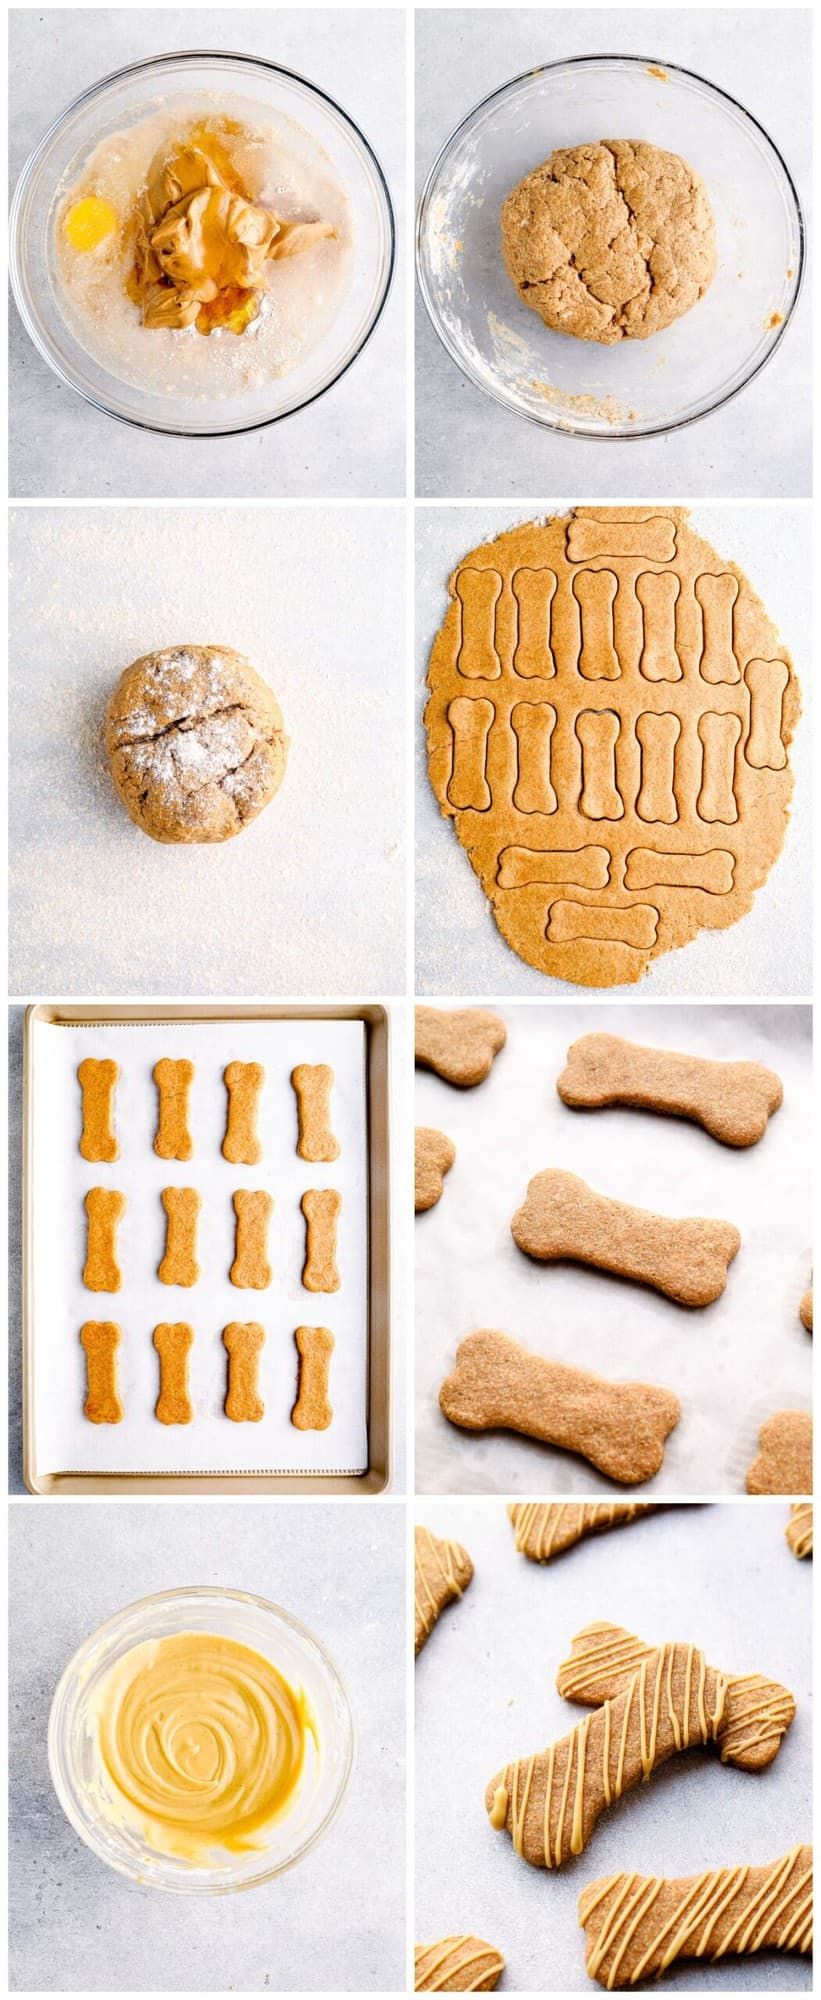 step by step photos for how to make homemade dog treats